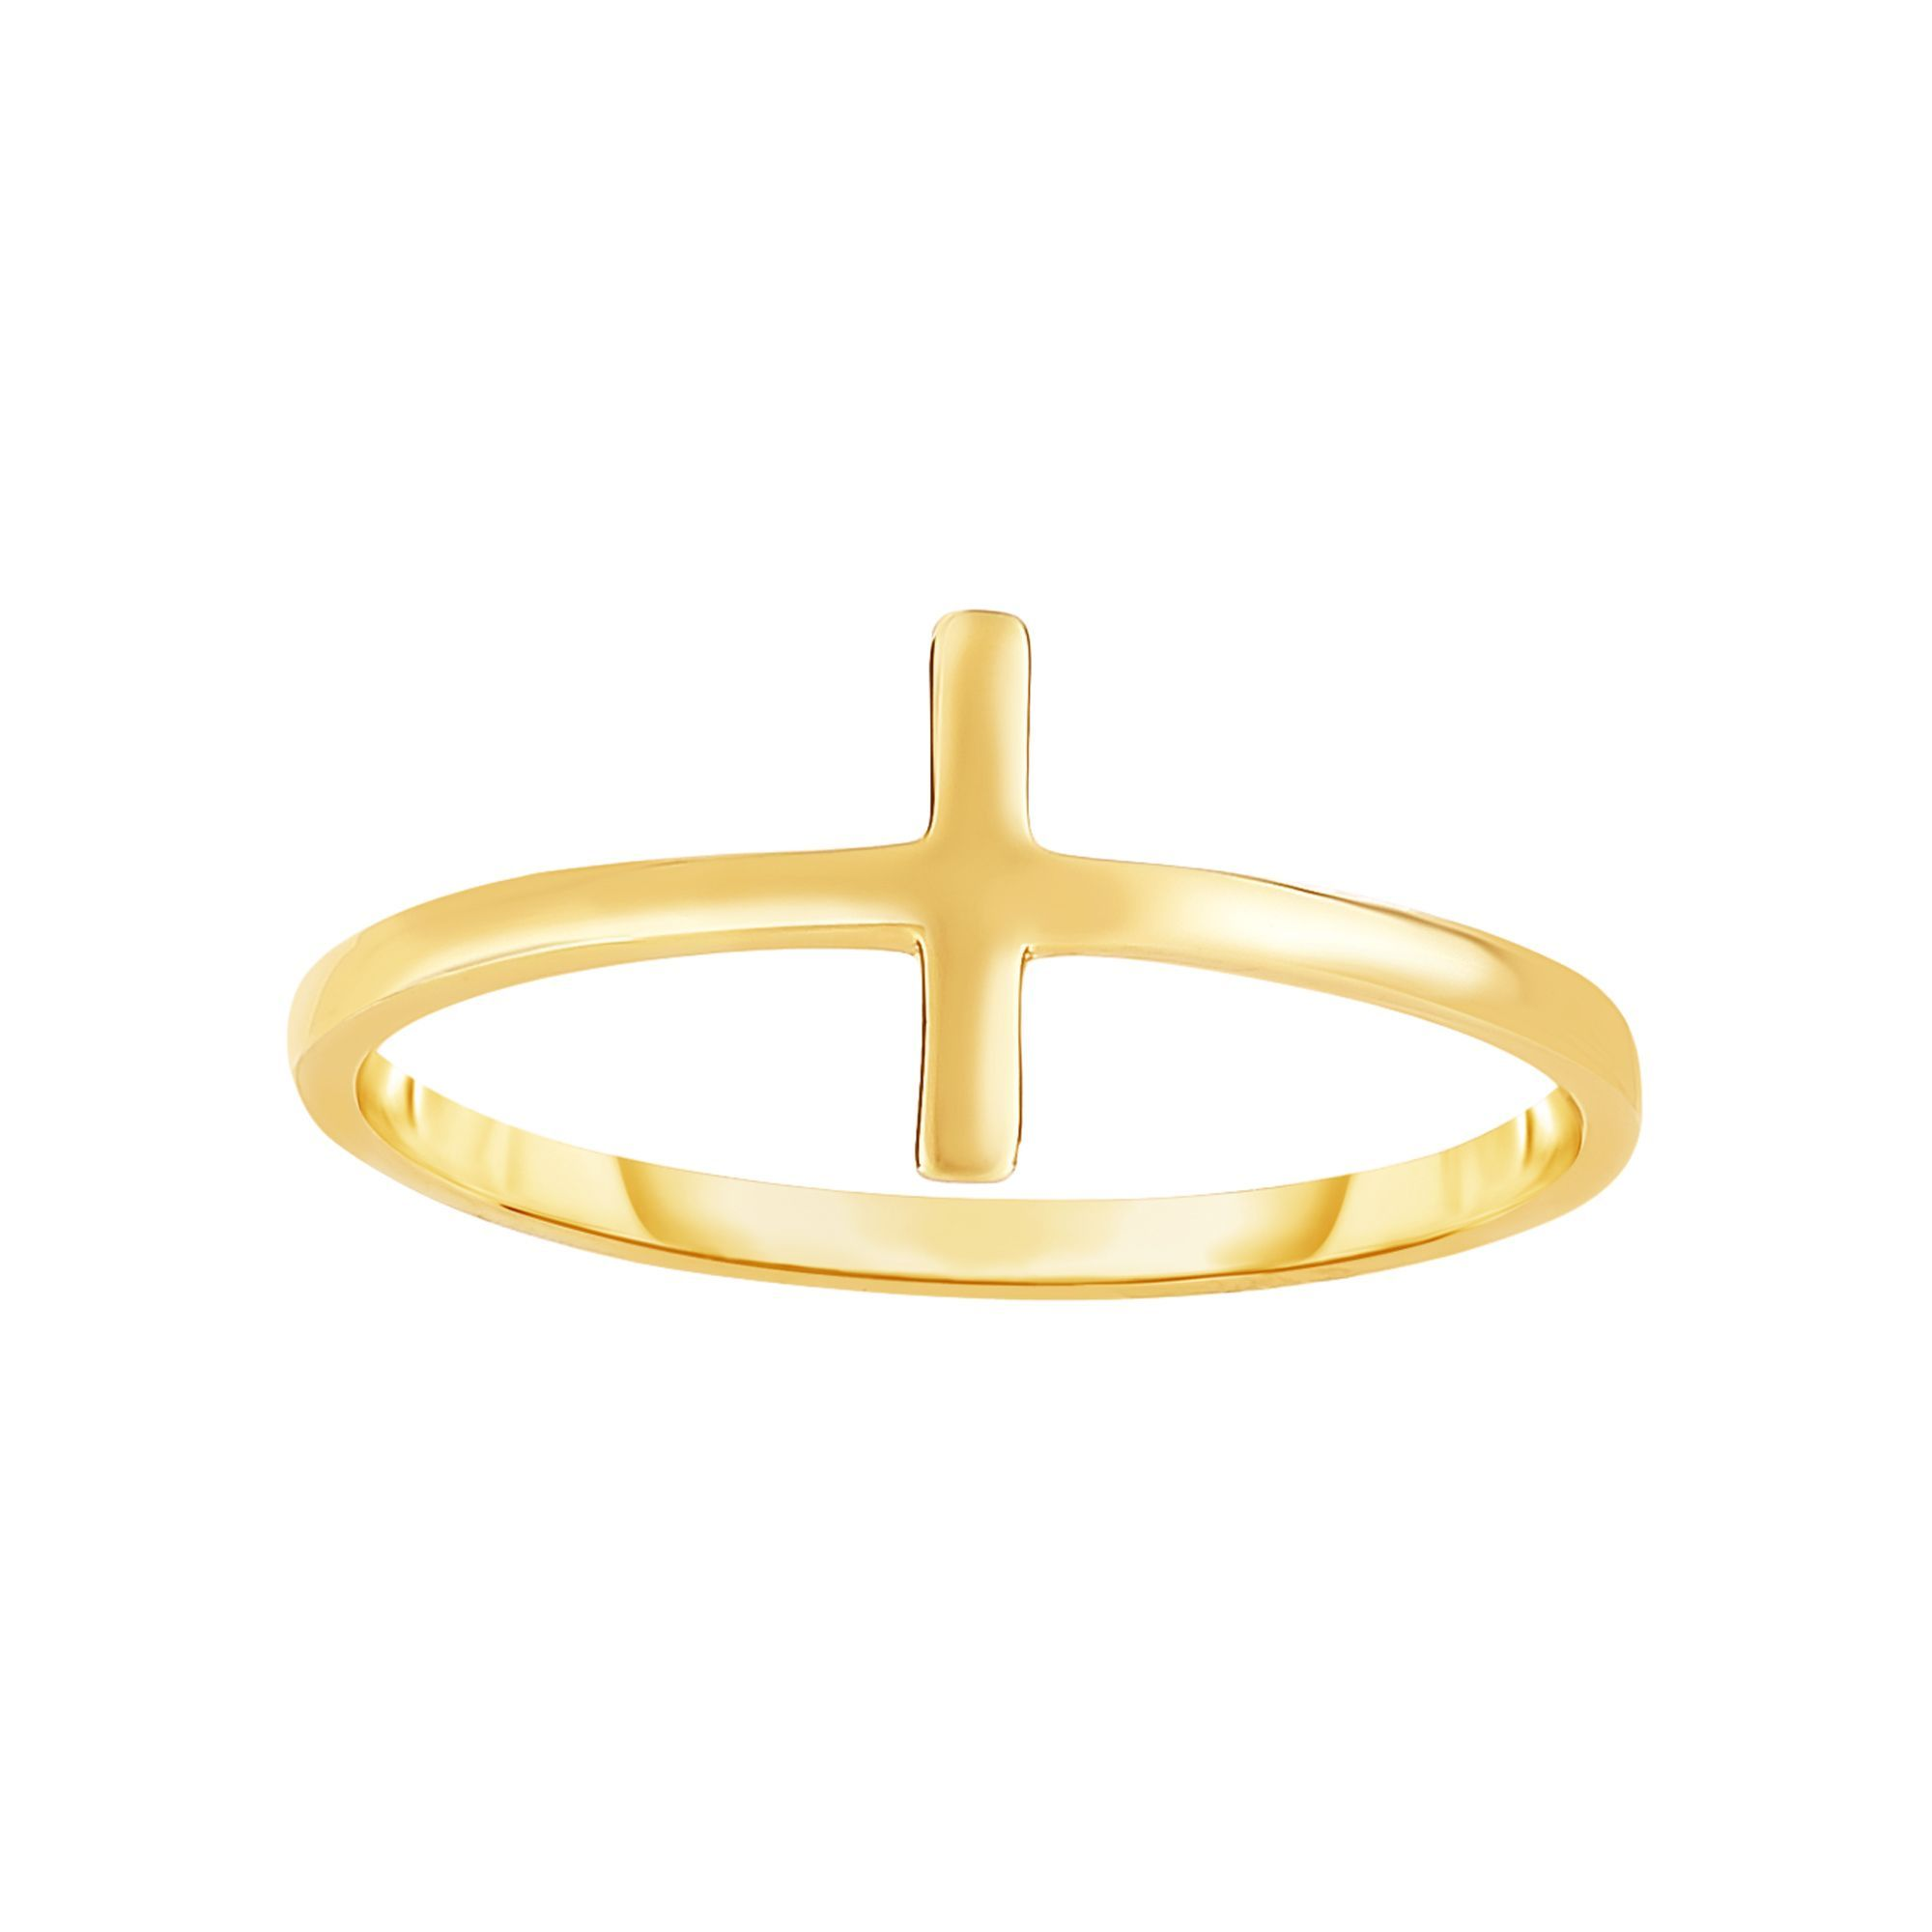 14 Karat Yellow Gold Shiny Sideways Cross Ring